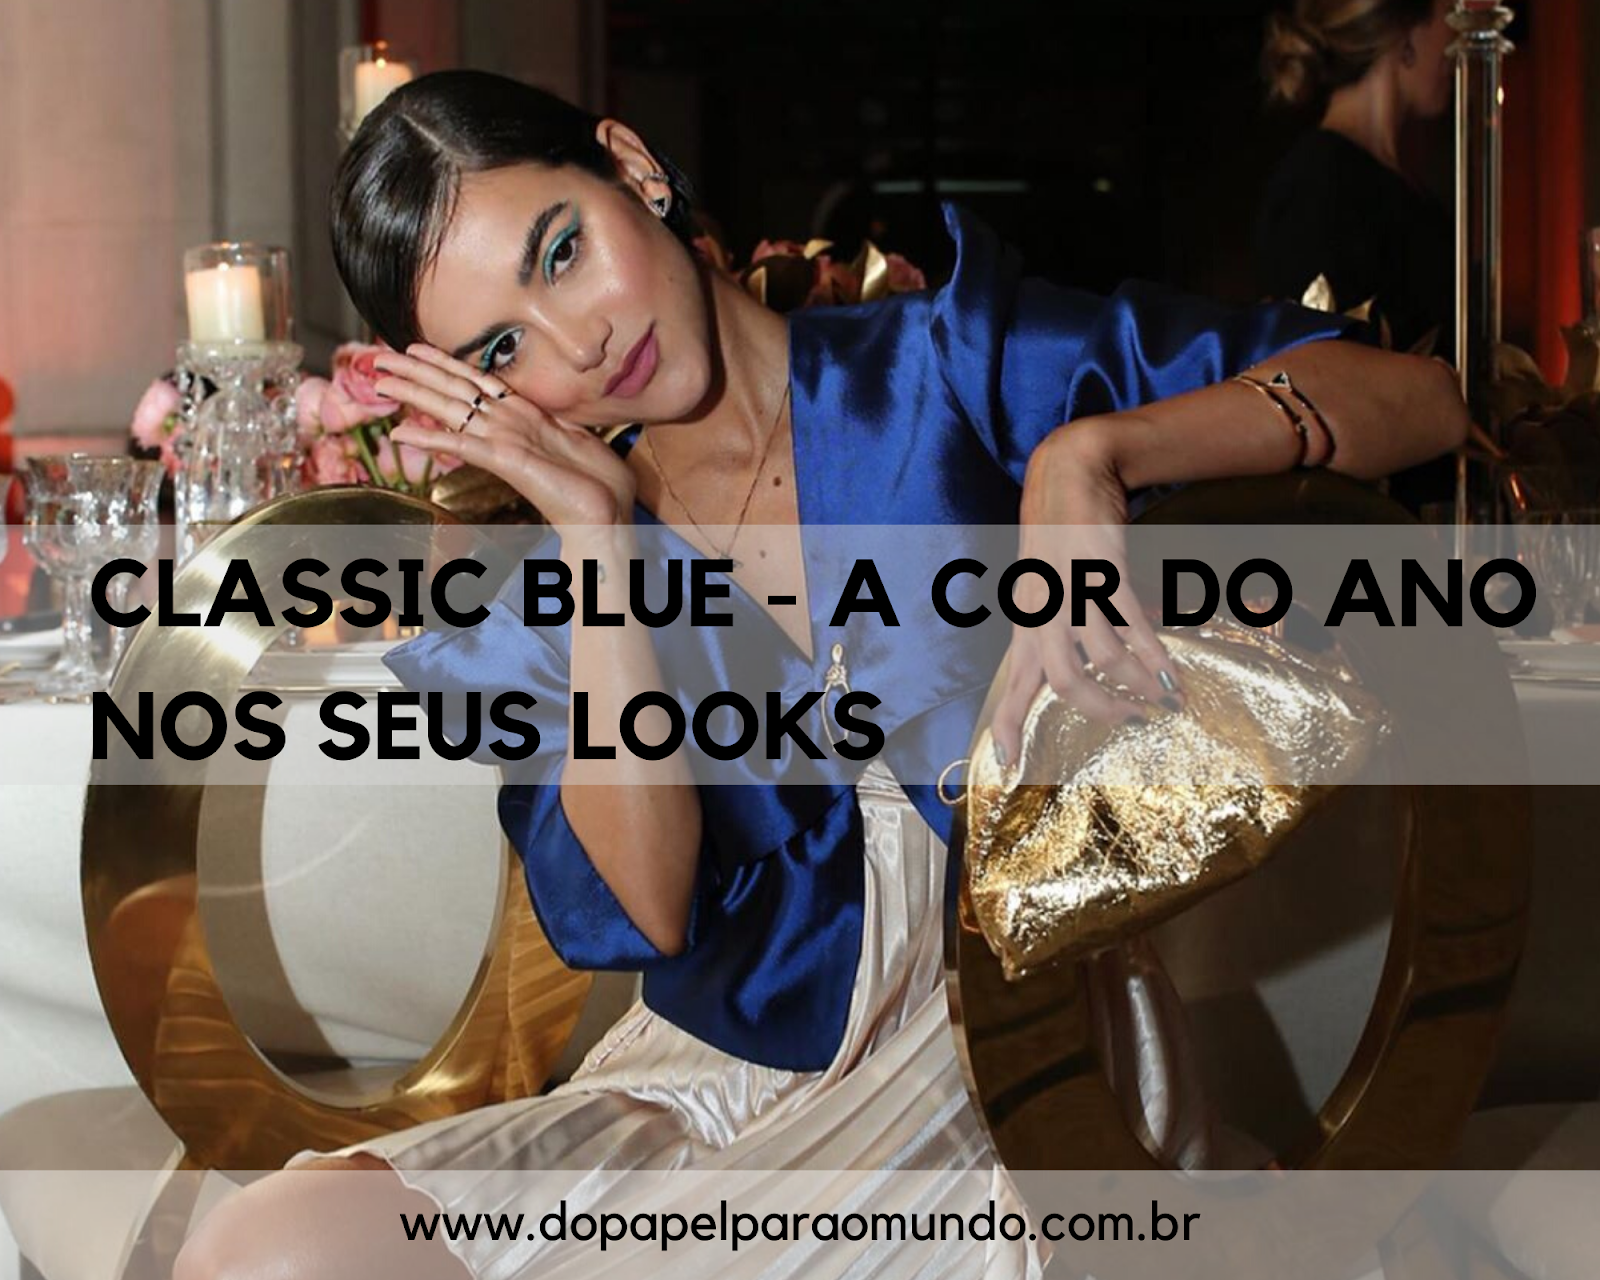 Classic Blue - a cor do ano nos seus looks